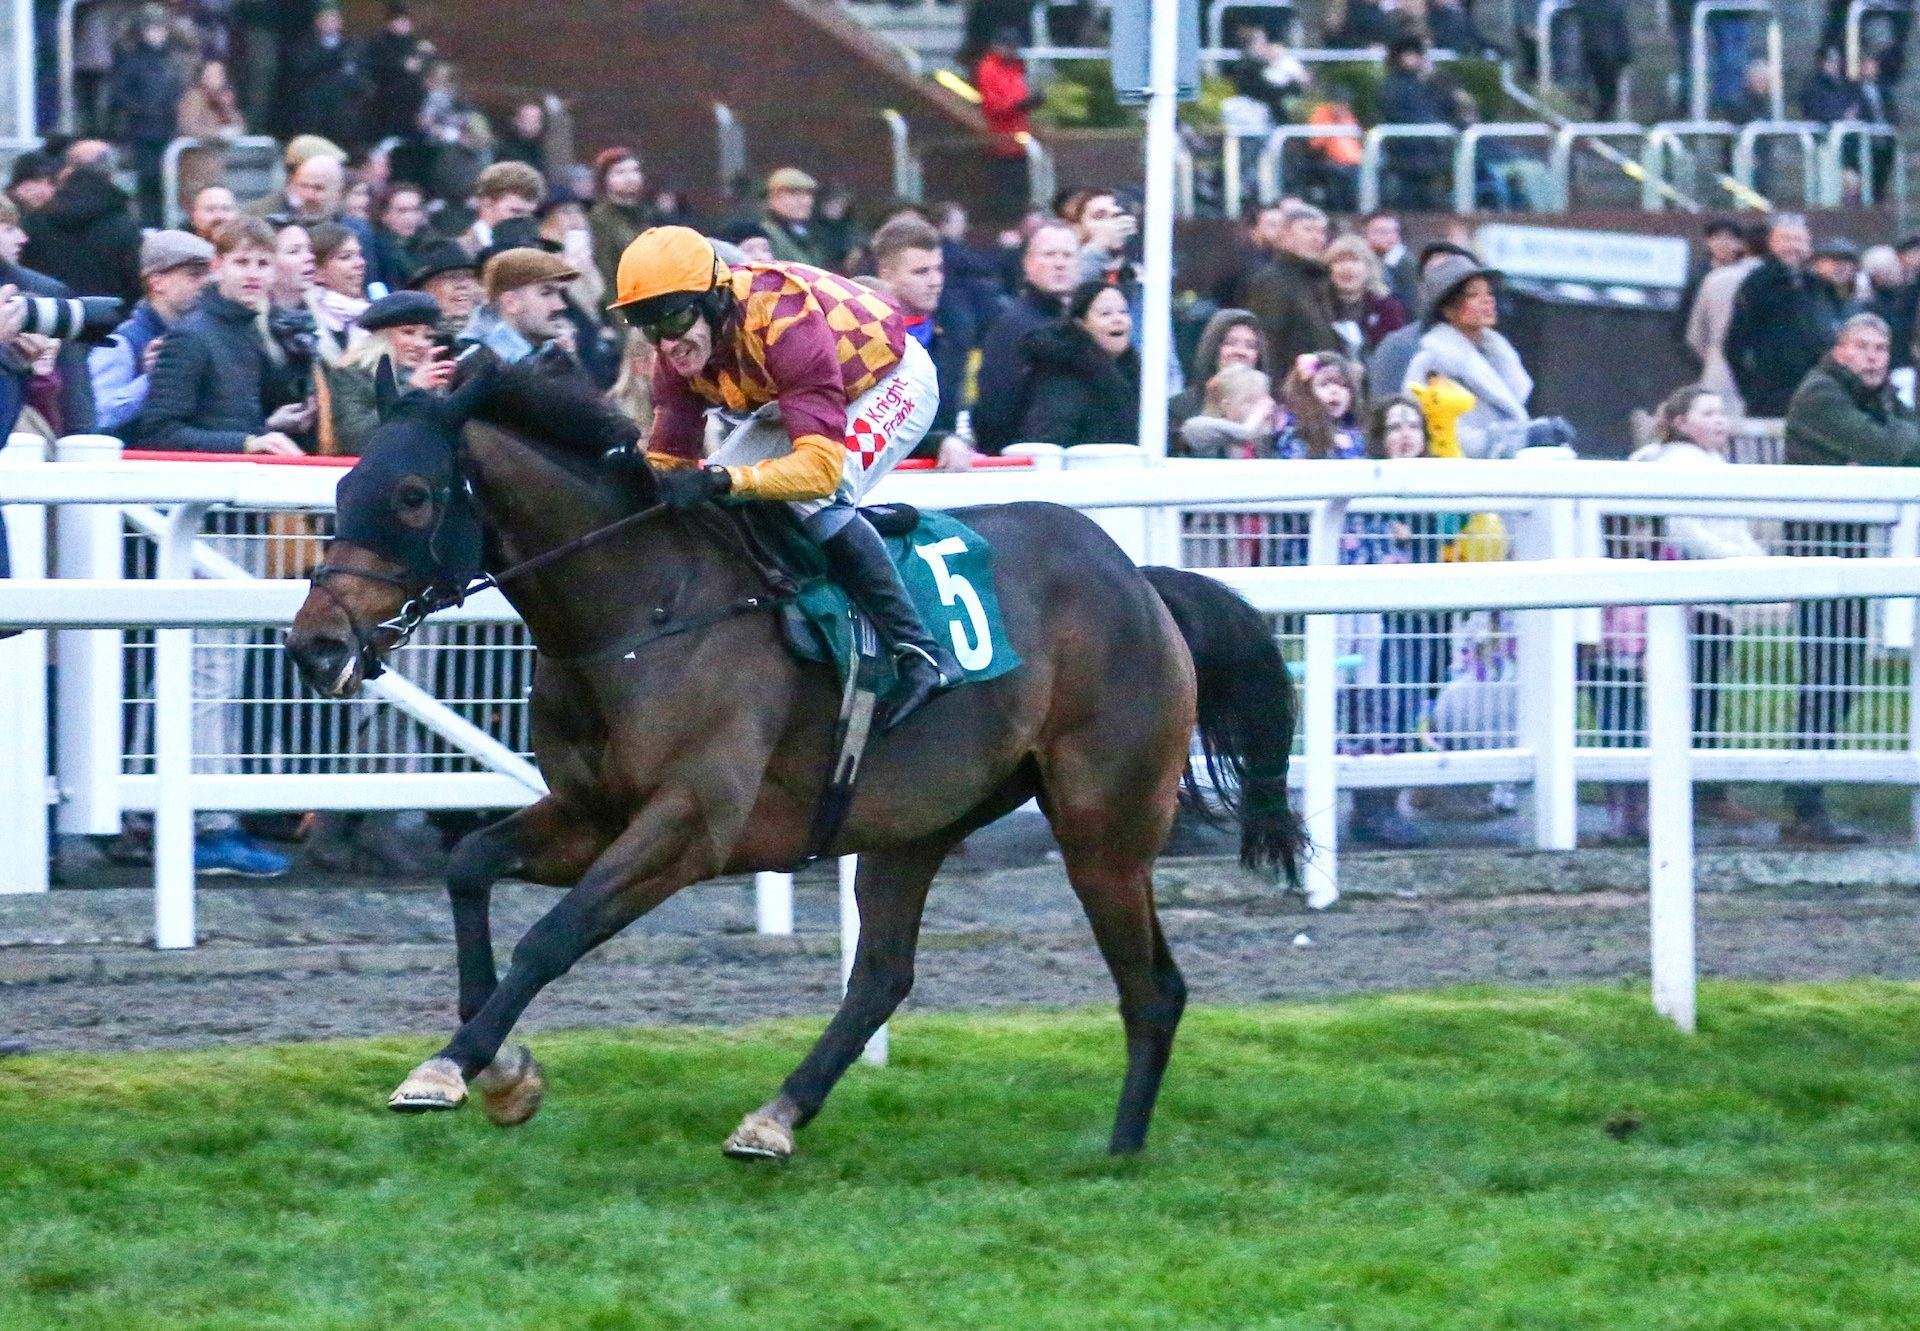 Israel Champ (Milan) Wins Listed Bumper At Cheltenham